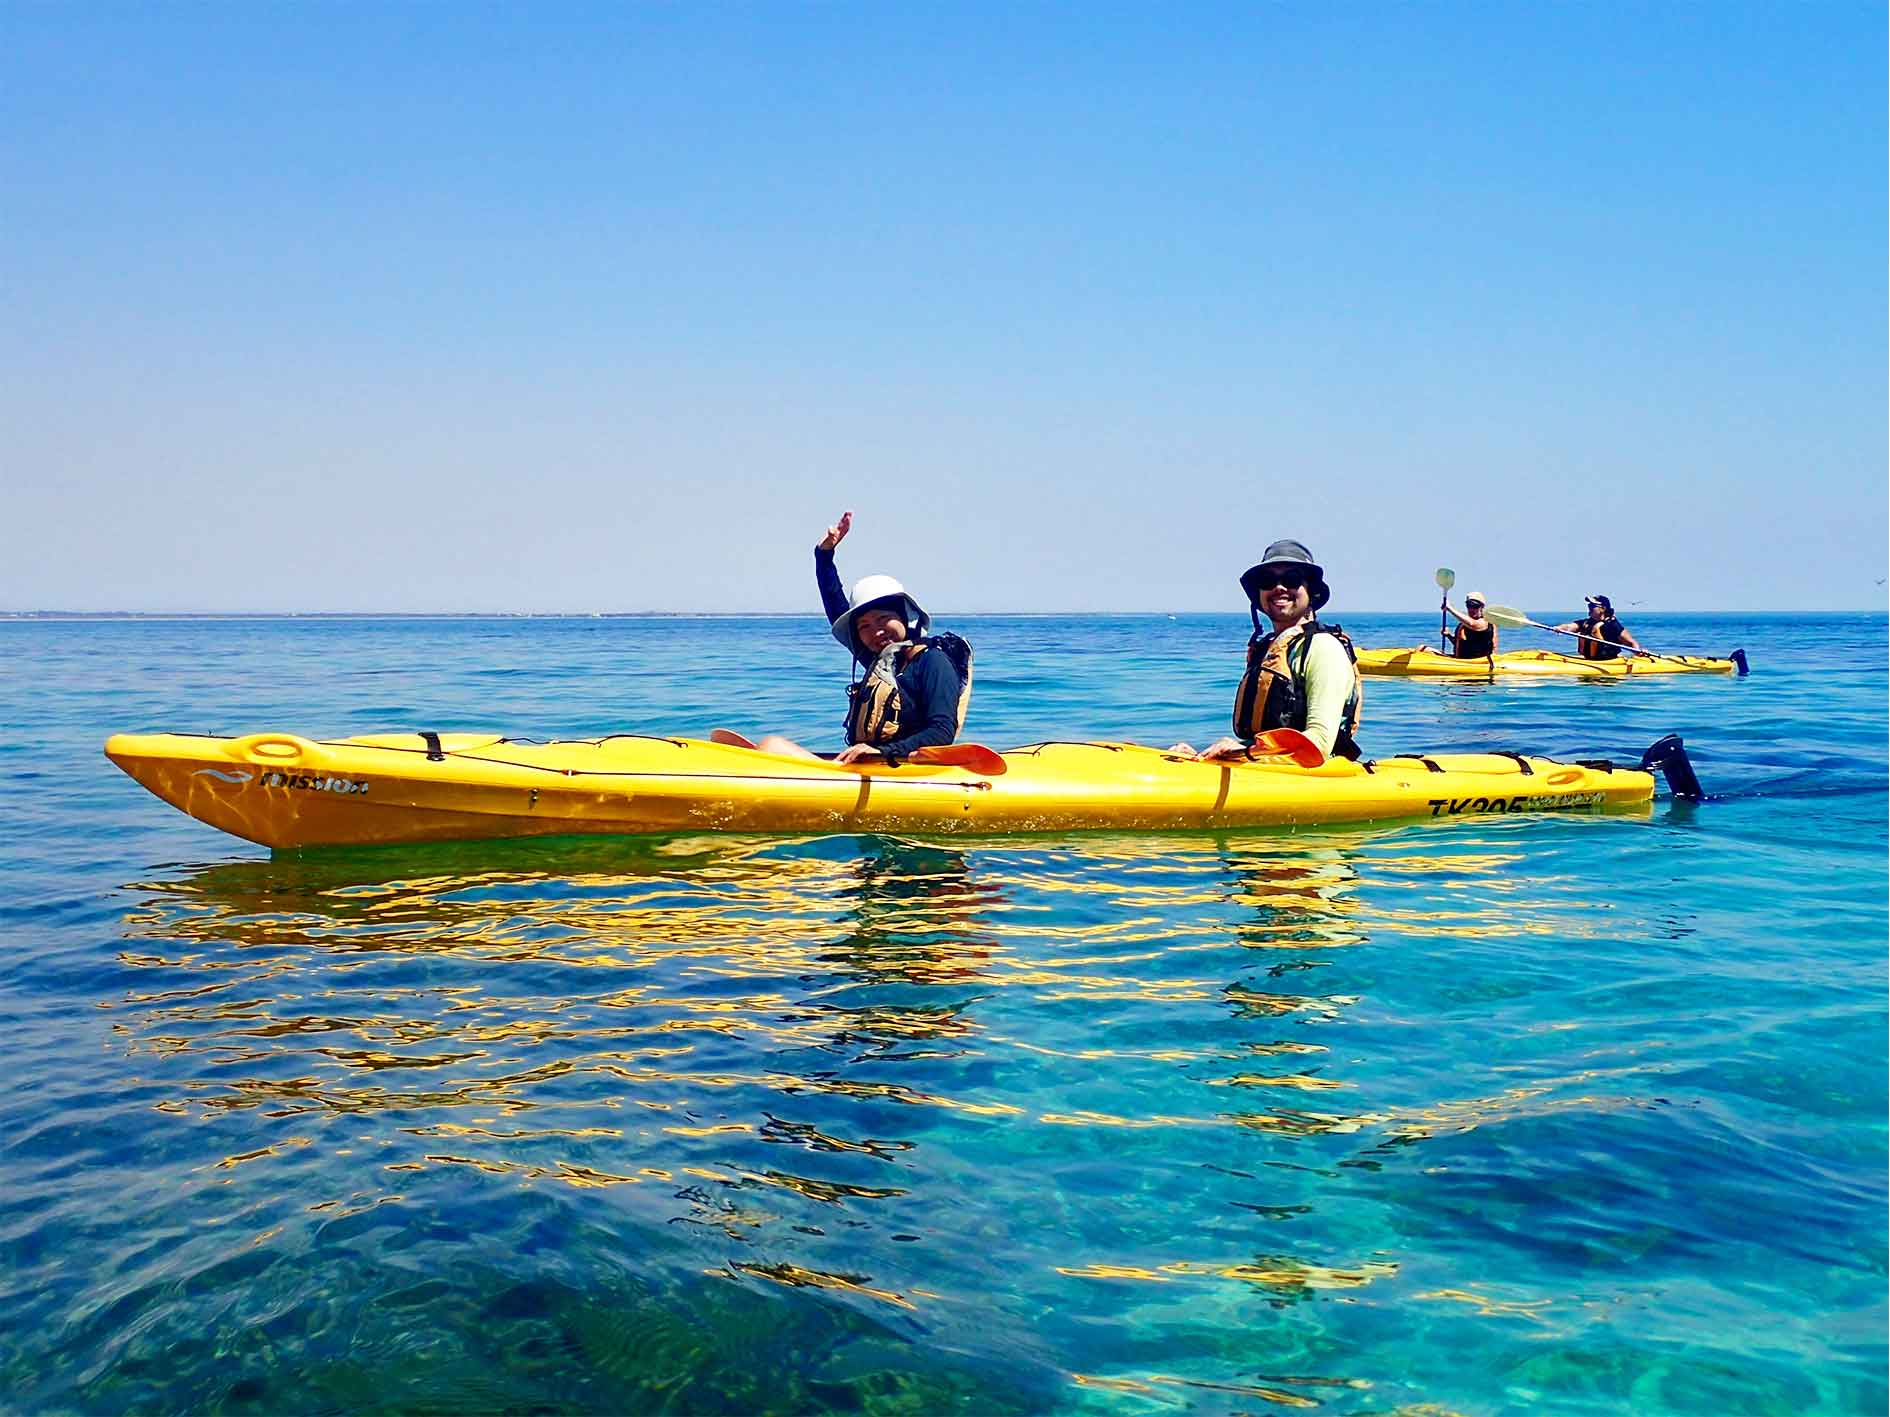 sea kayak tour, Sea kayak tour Perth, sea kayak eco tour, things to do in perth, Paddle to Penguin, Penguin and Seal Island, Sea kayak tour, eco tour, perth, western australia, rockingham, wild encounters, capricorn sea kayaking, Penguin Island sea kayak